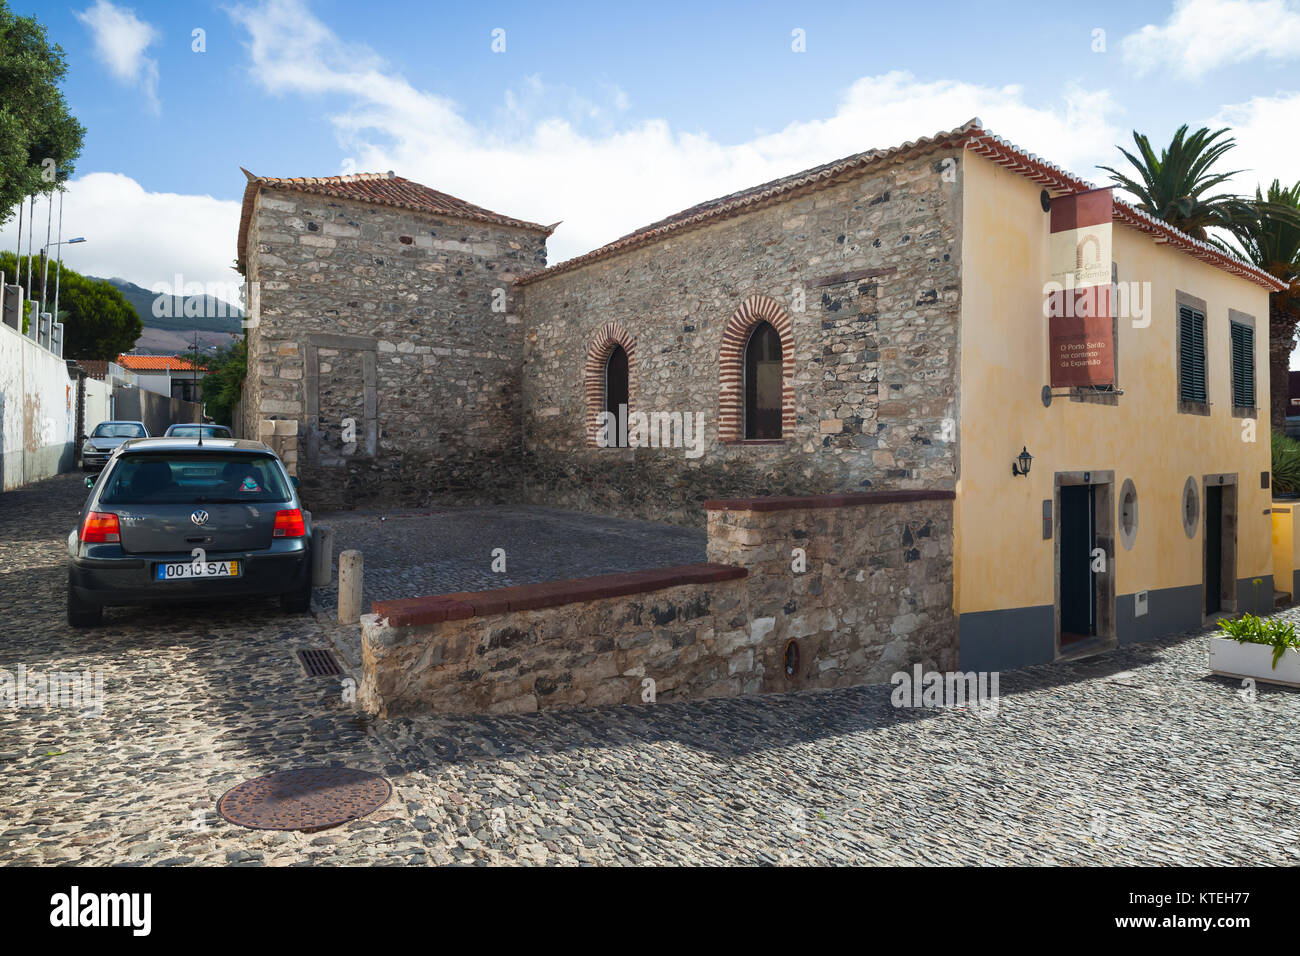 Vila Baleira, Portugal - August 18, 2017: Christopher Columbus House exterior, historical museum - Stock Image